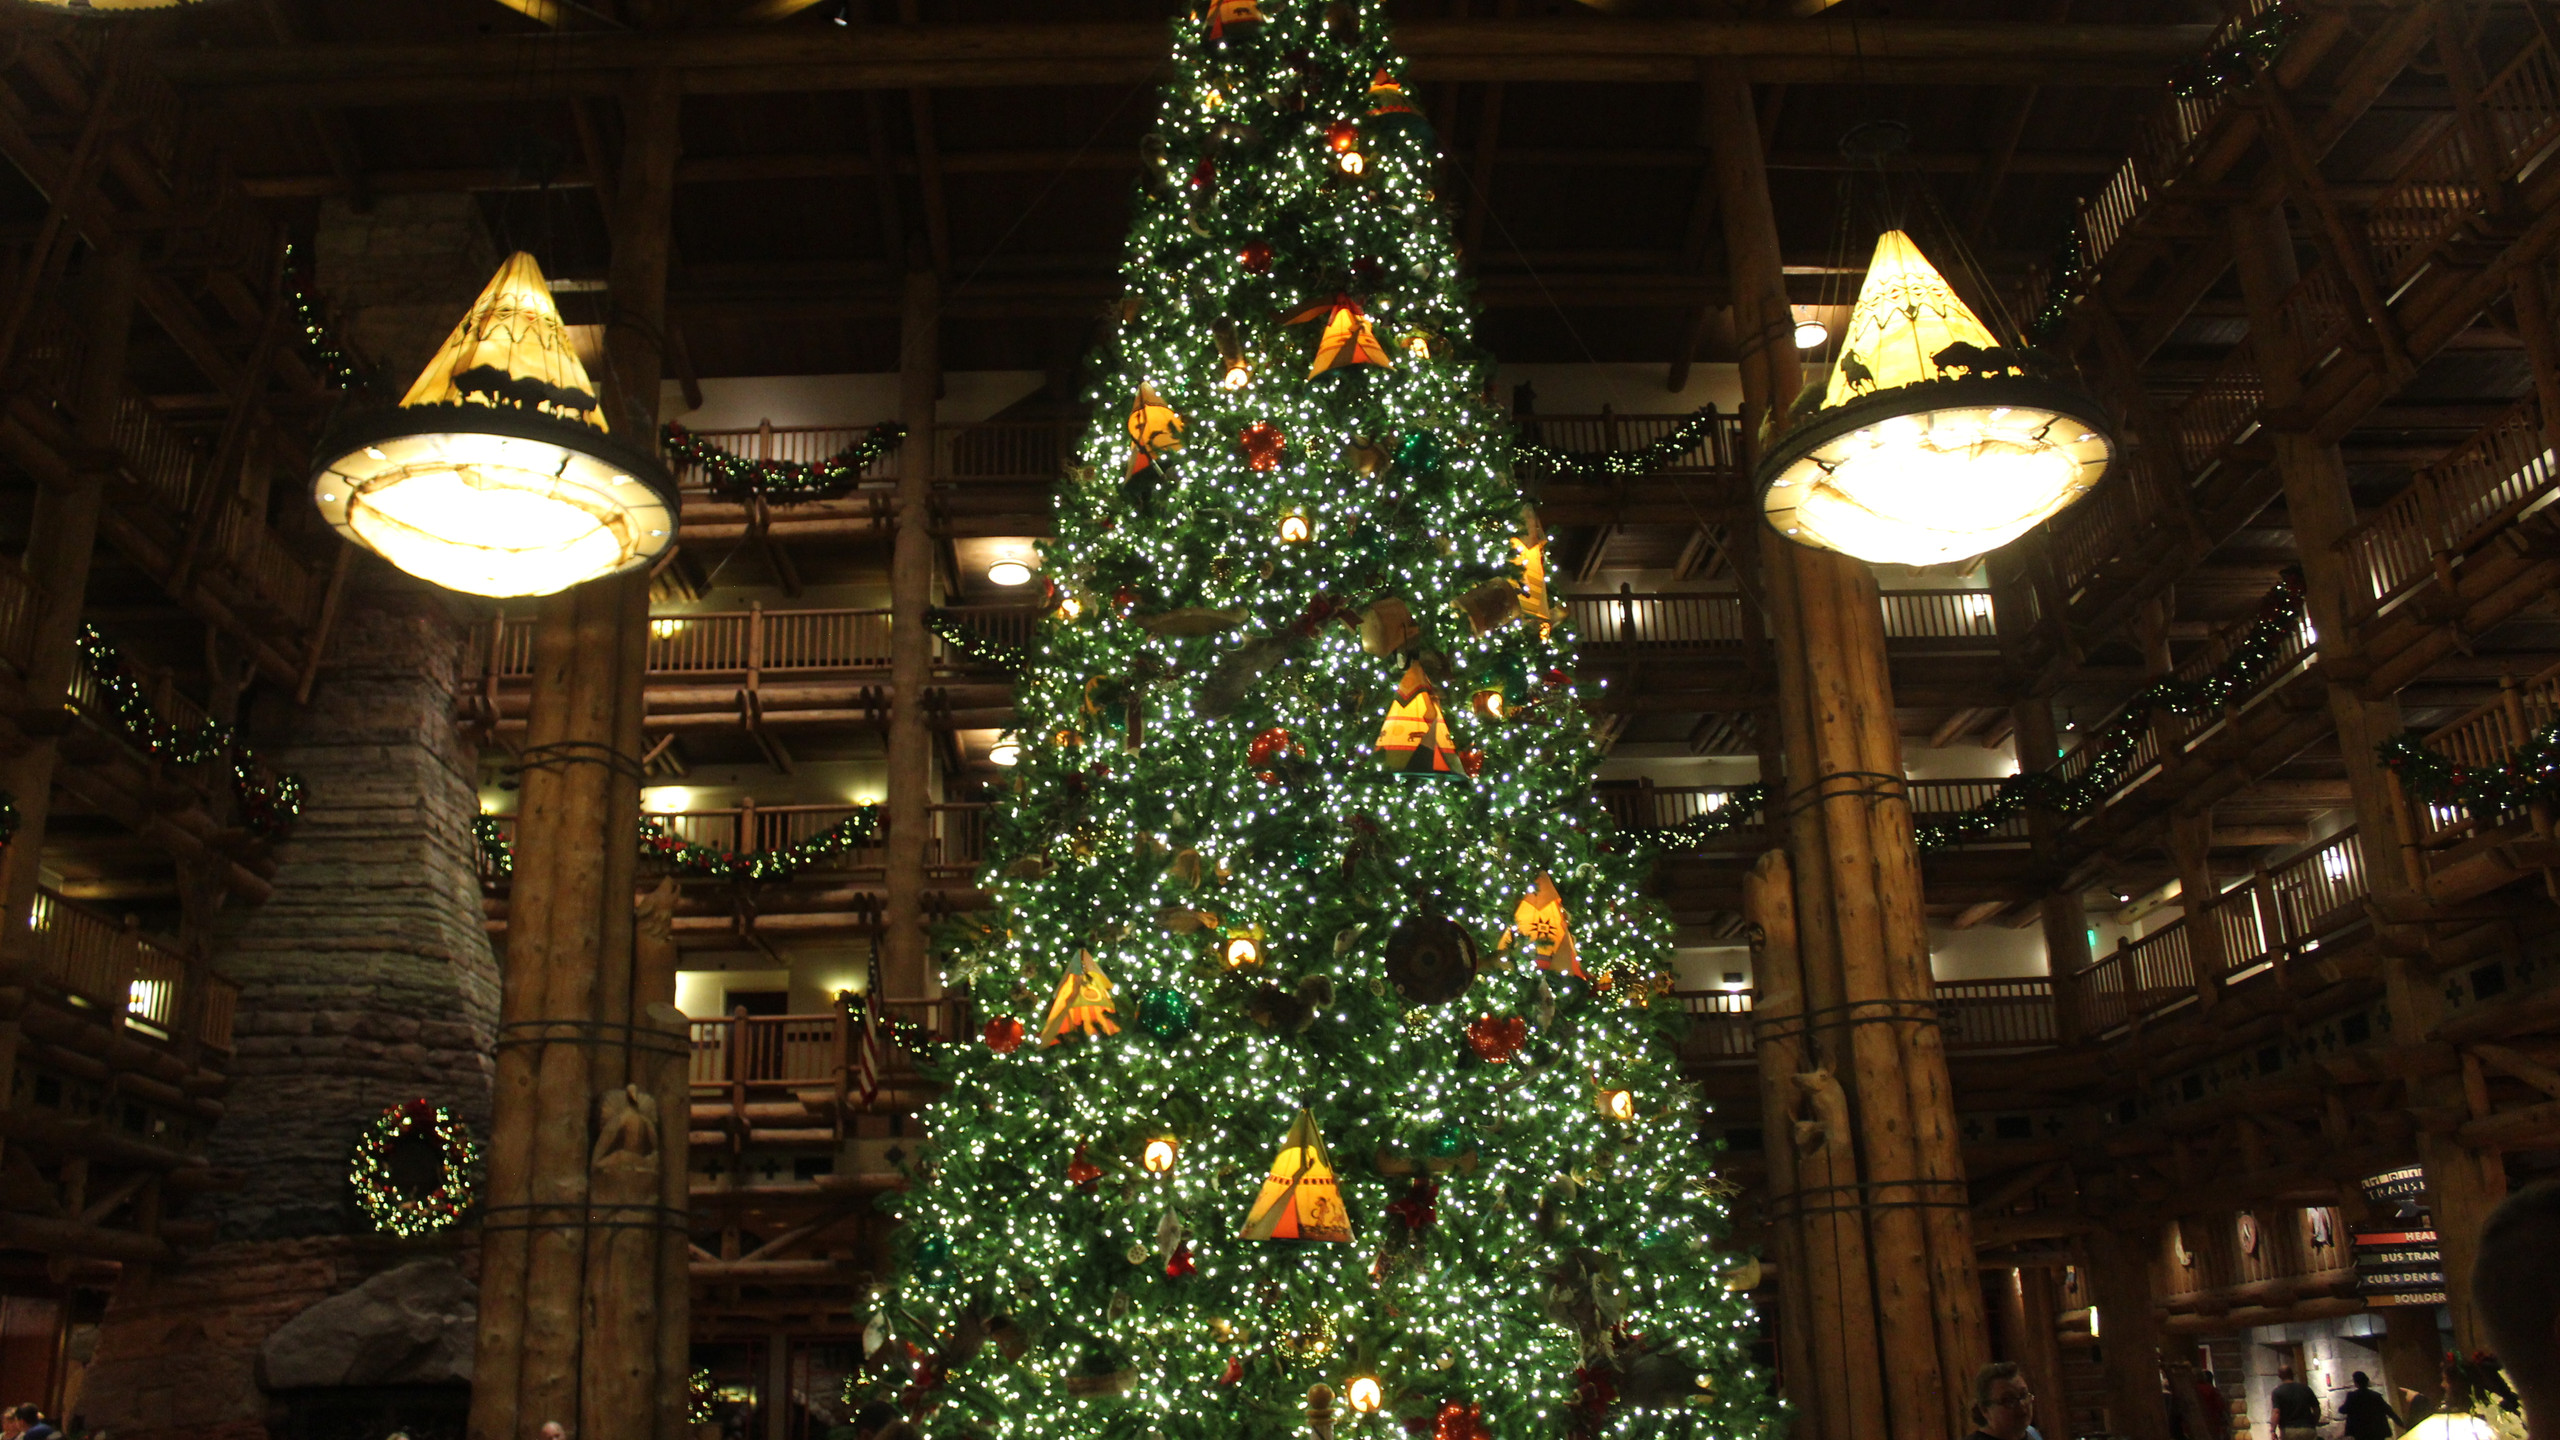 Wilderness Lodge at Disney World lobby decorated for Christmas